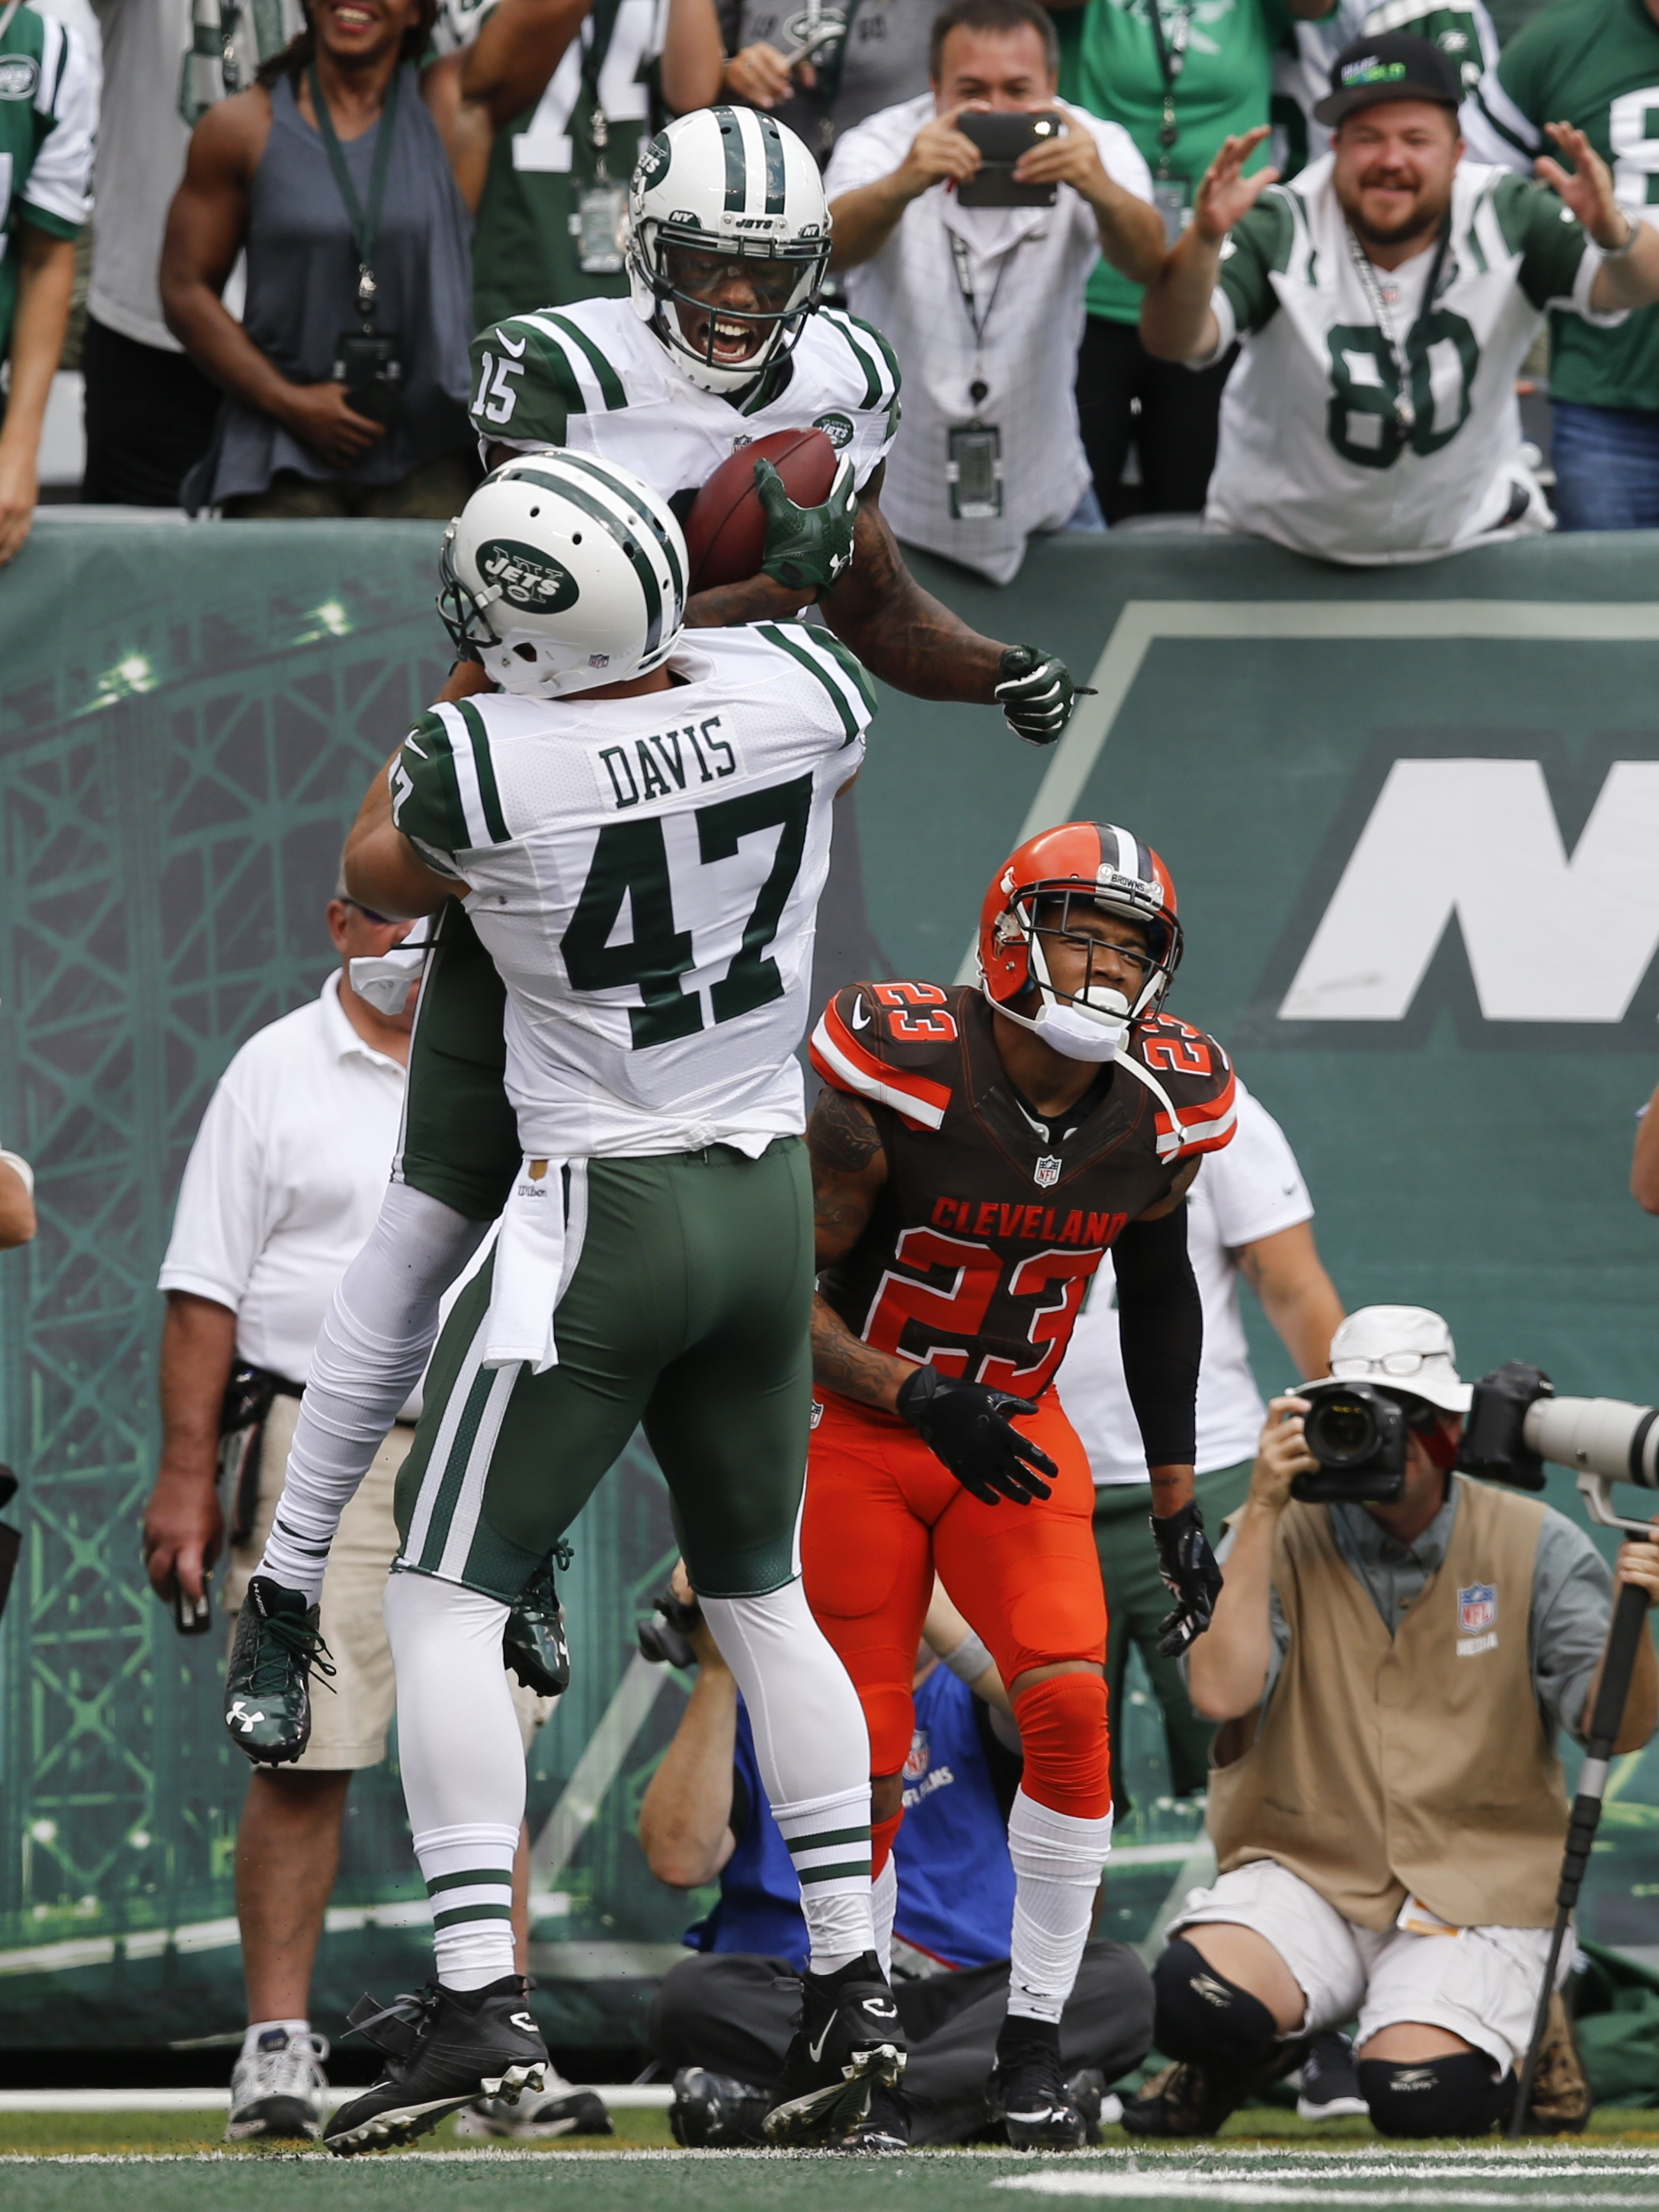 New York Jets wide receiver Brandon Marshall (15) celebrates with teammate Kellen Davis (47) after catching a pass for a touchdown during the second half of an NFL football game against the Cleveland Browns Sunday, Sept. 13, 2015 in East Rutherford, N.J.